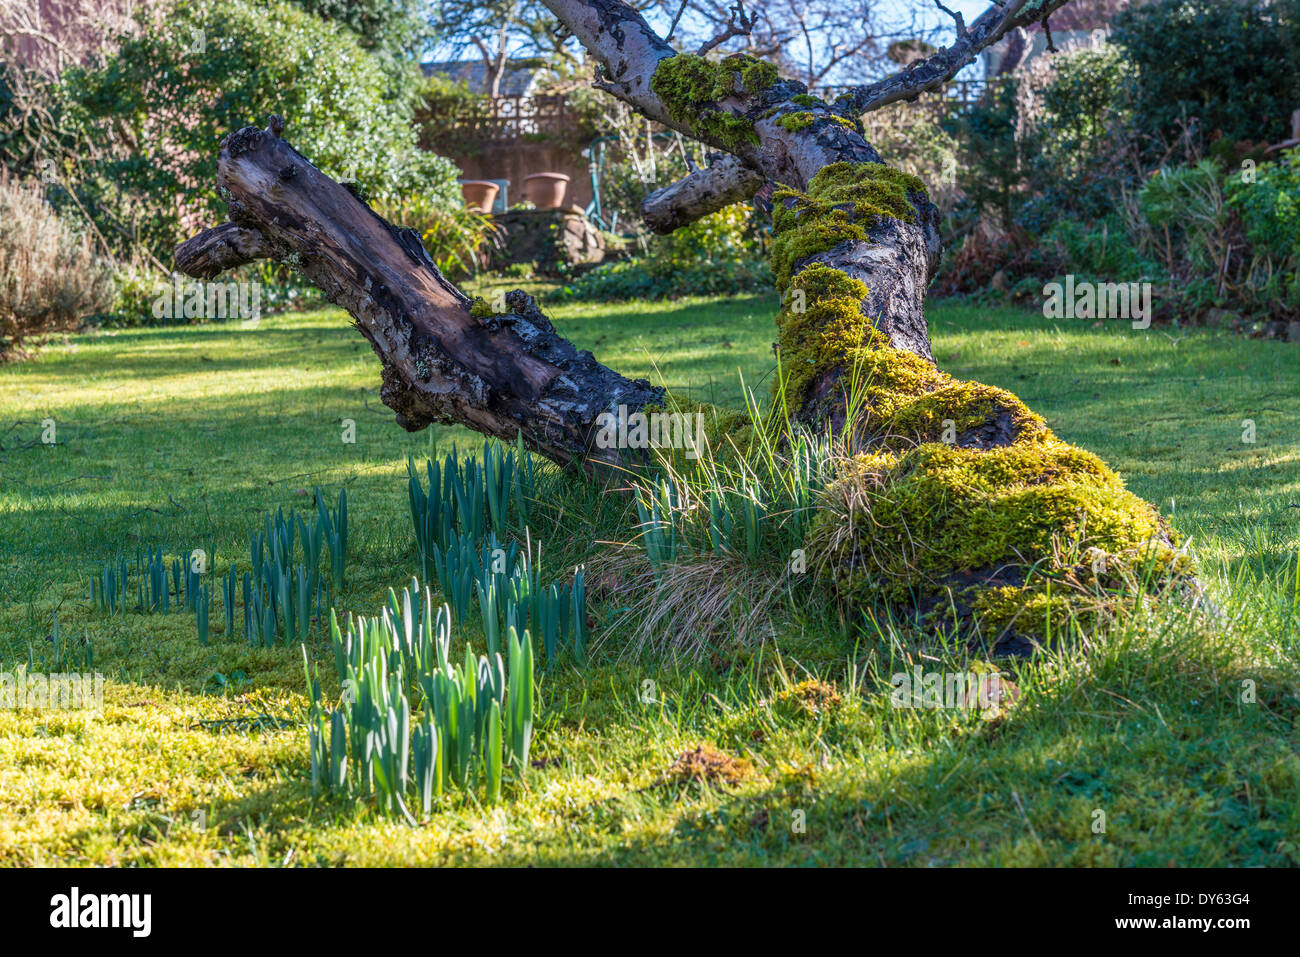 Daffodils growing in garden under old apple tree in spring. First of sequence of 10 (ten) images photographed over five weeks. - Stock Image